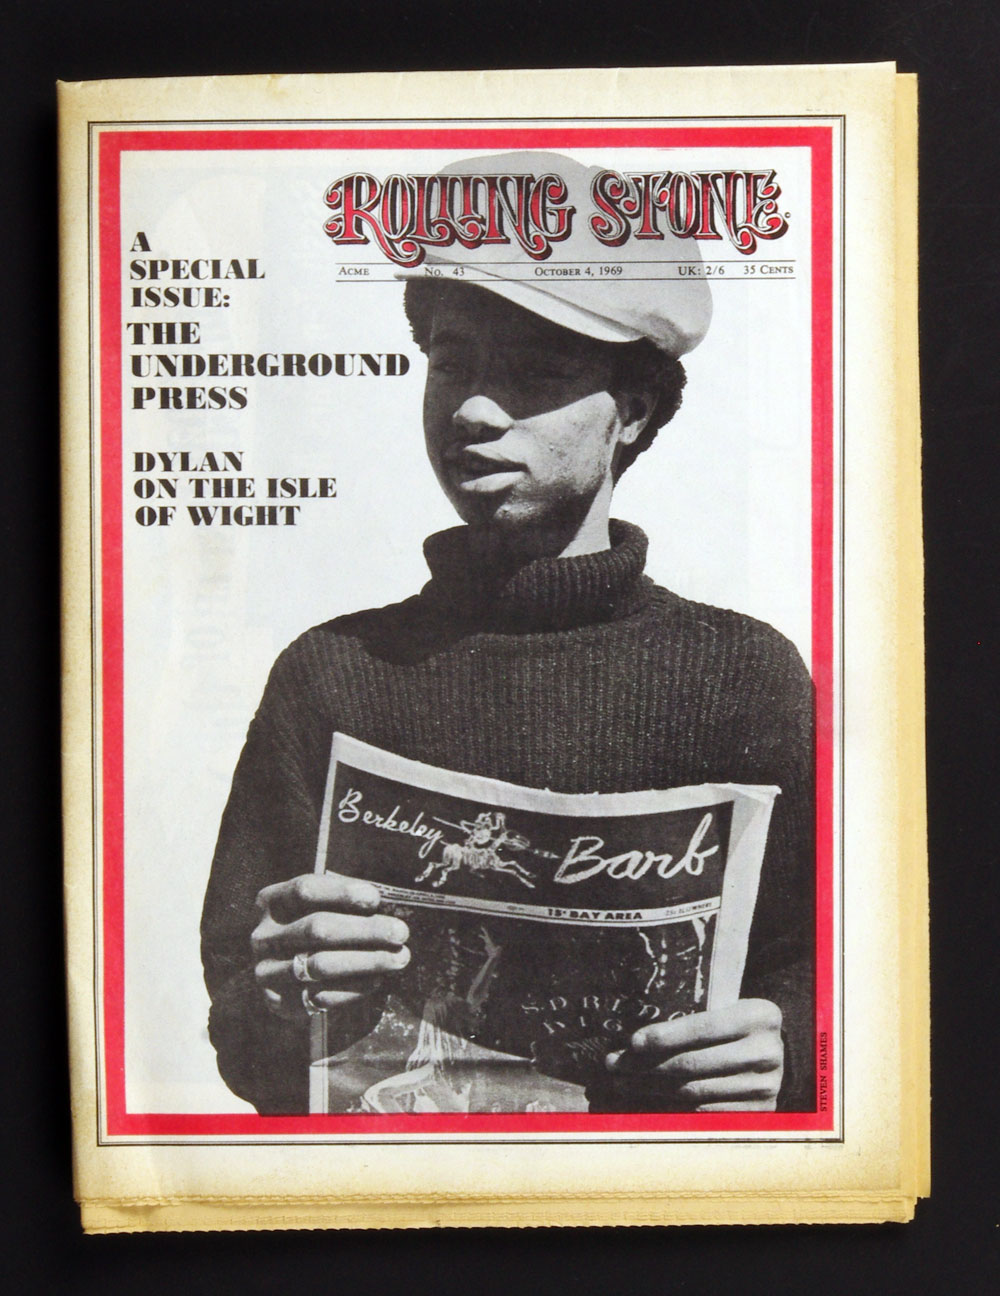 Rolling Stone Magazine 1969 Oct 4 No. 43 Bob Dylan on the Isle of Wight